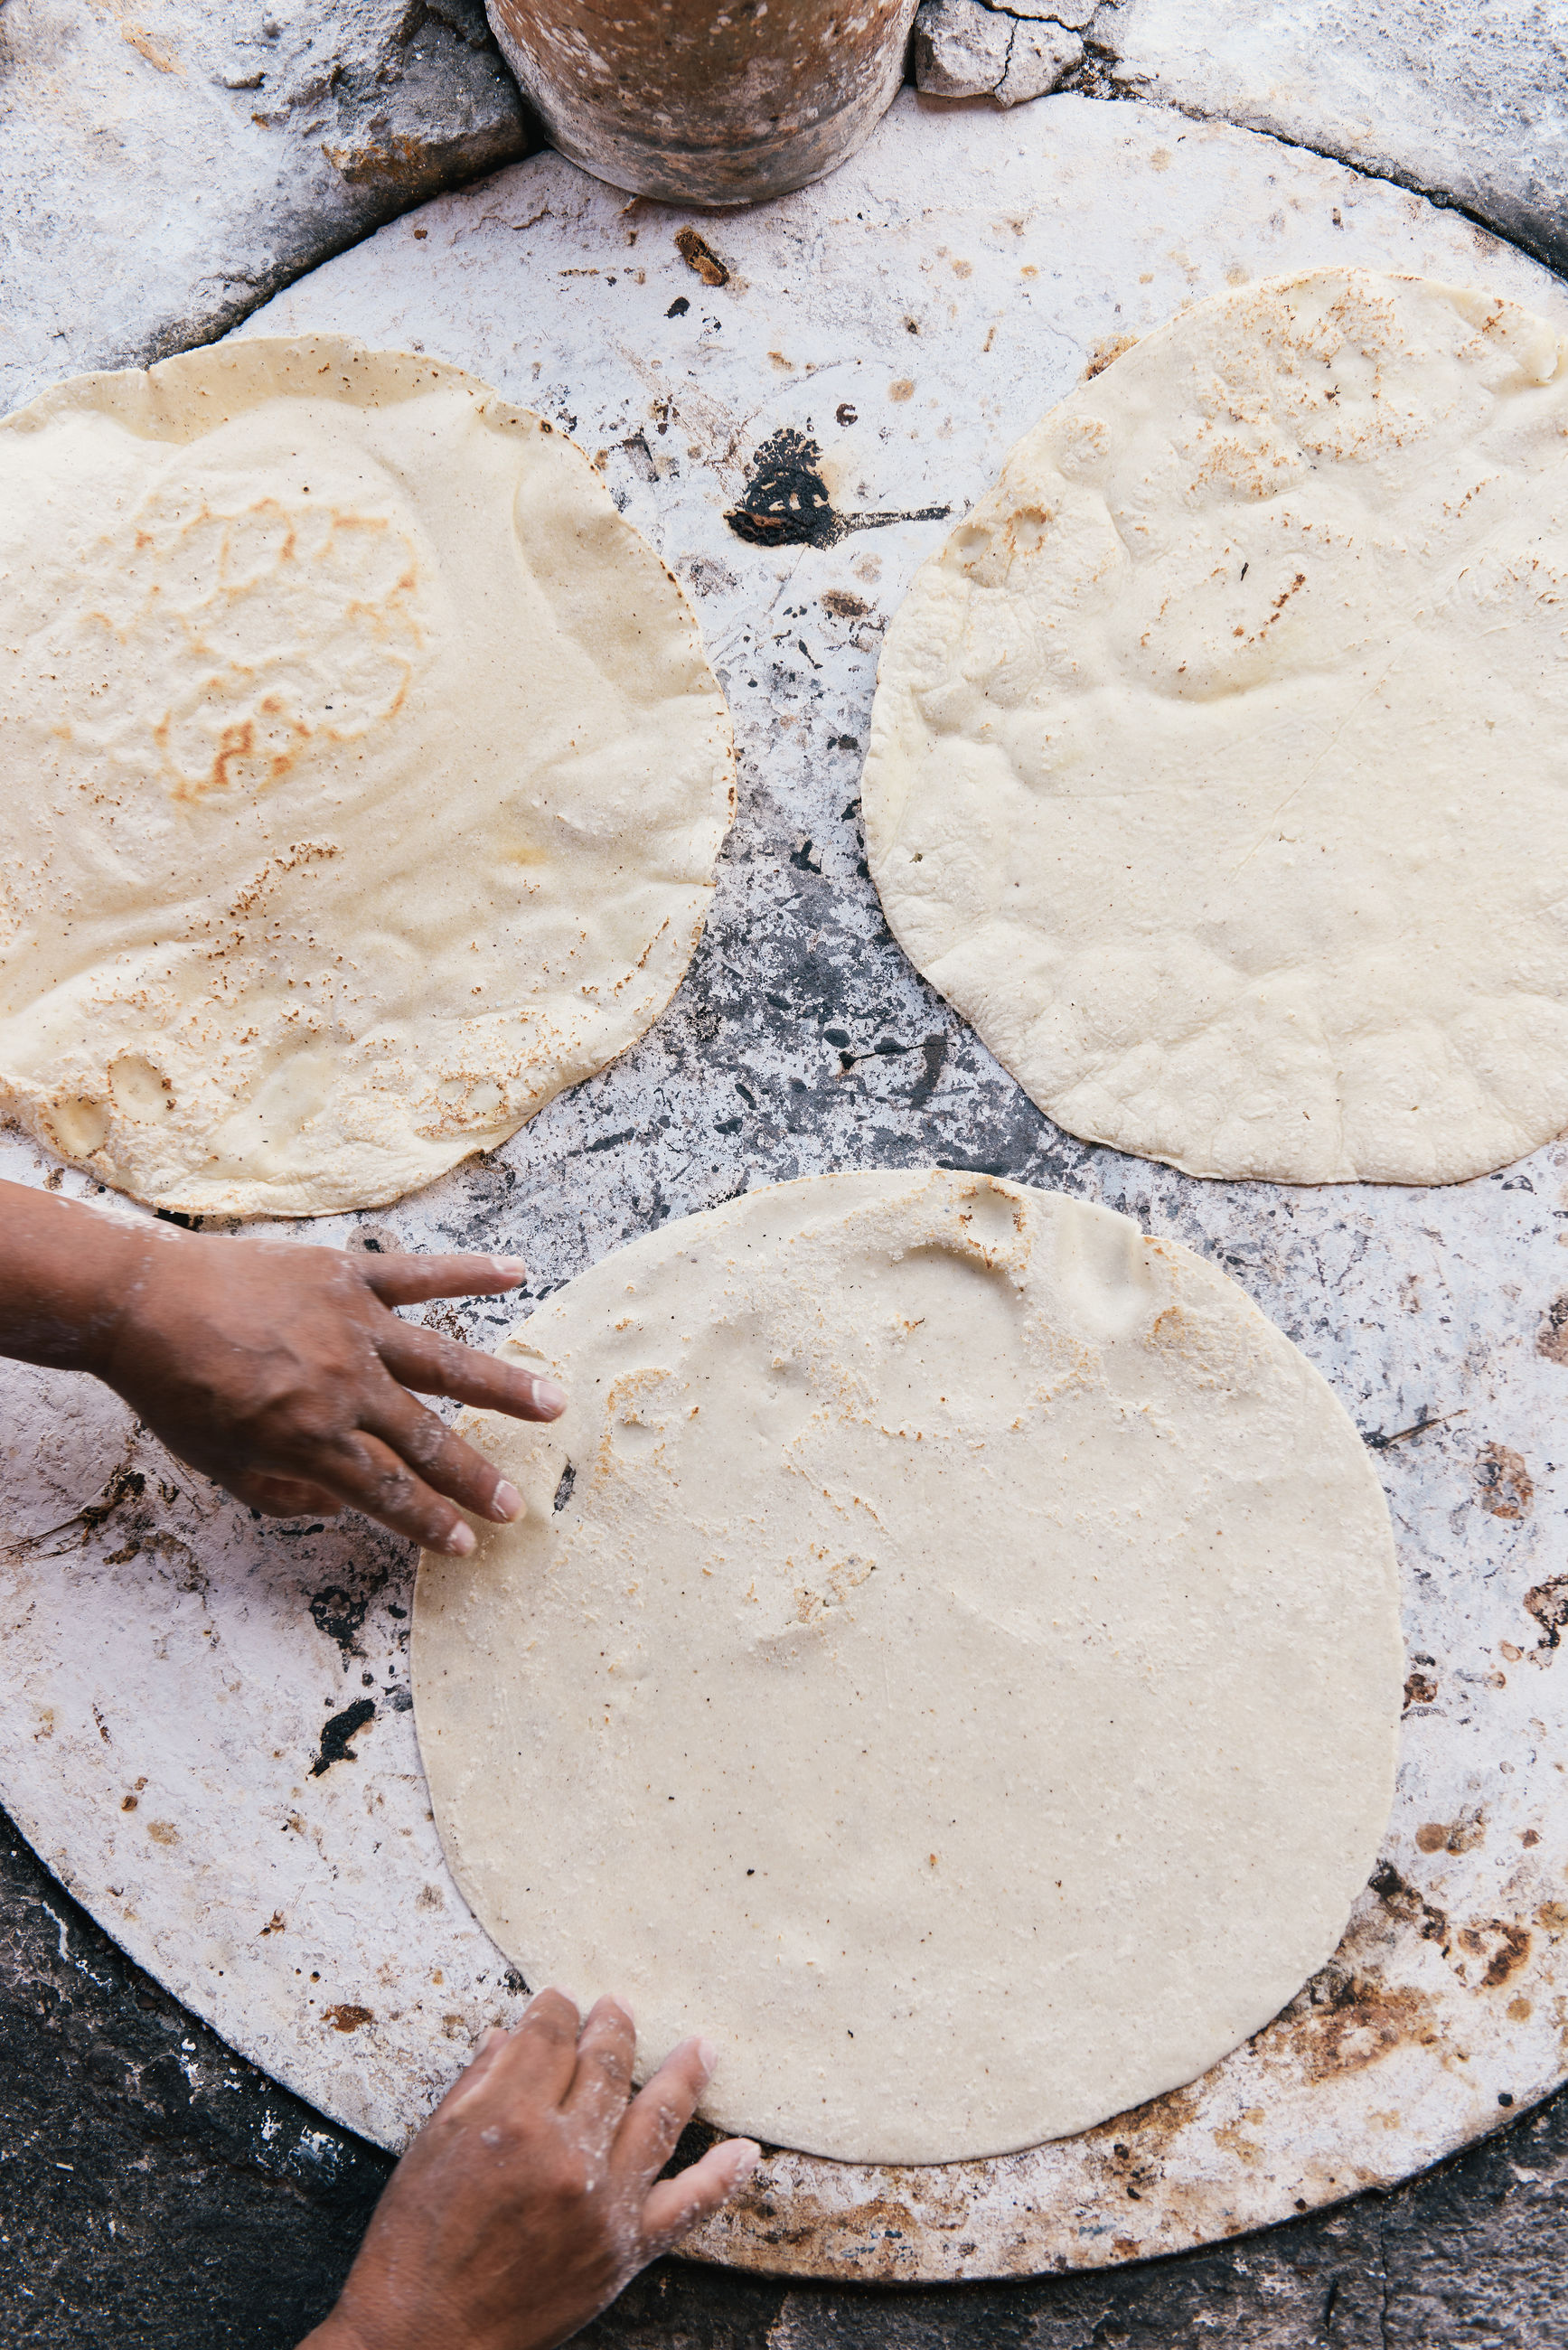 HIGH ANGLE VIEW OF WOMAN PREPARING BREAD